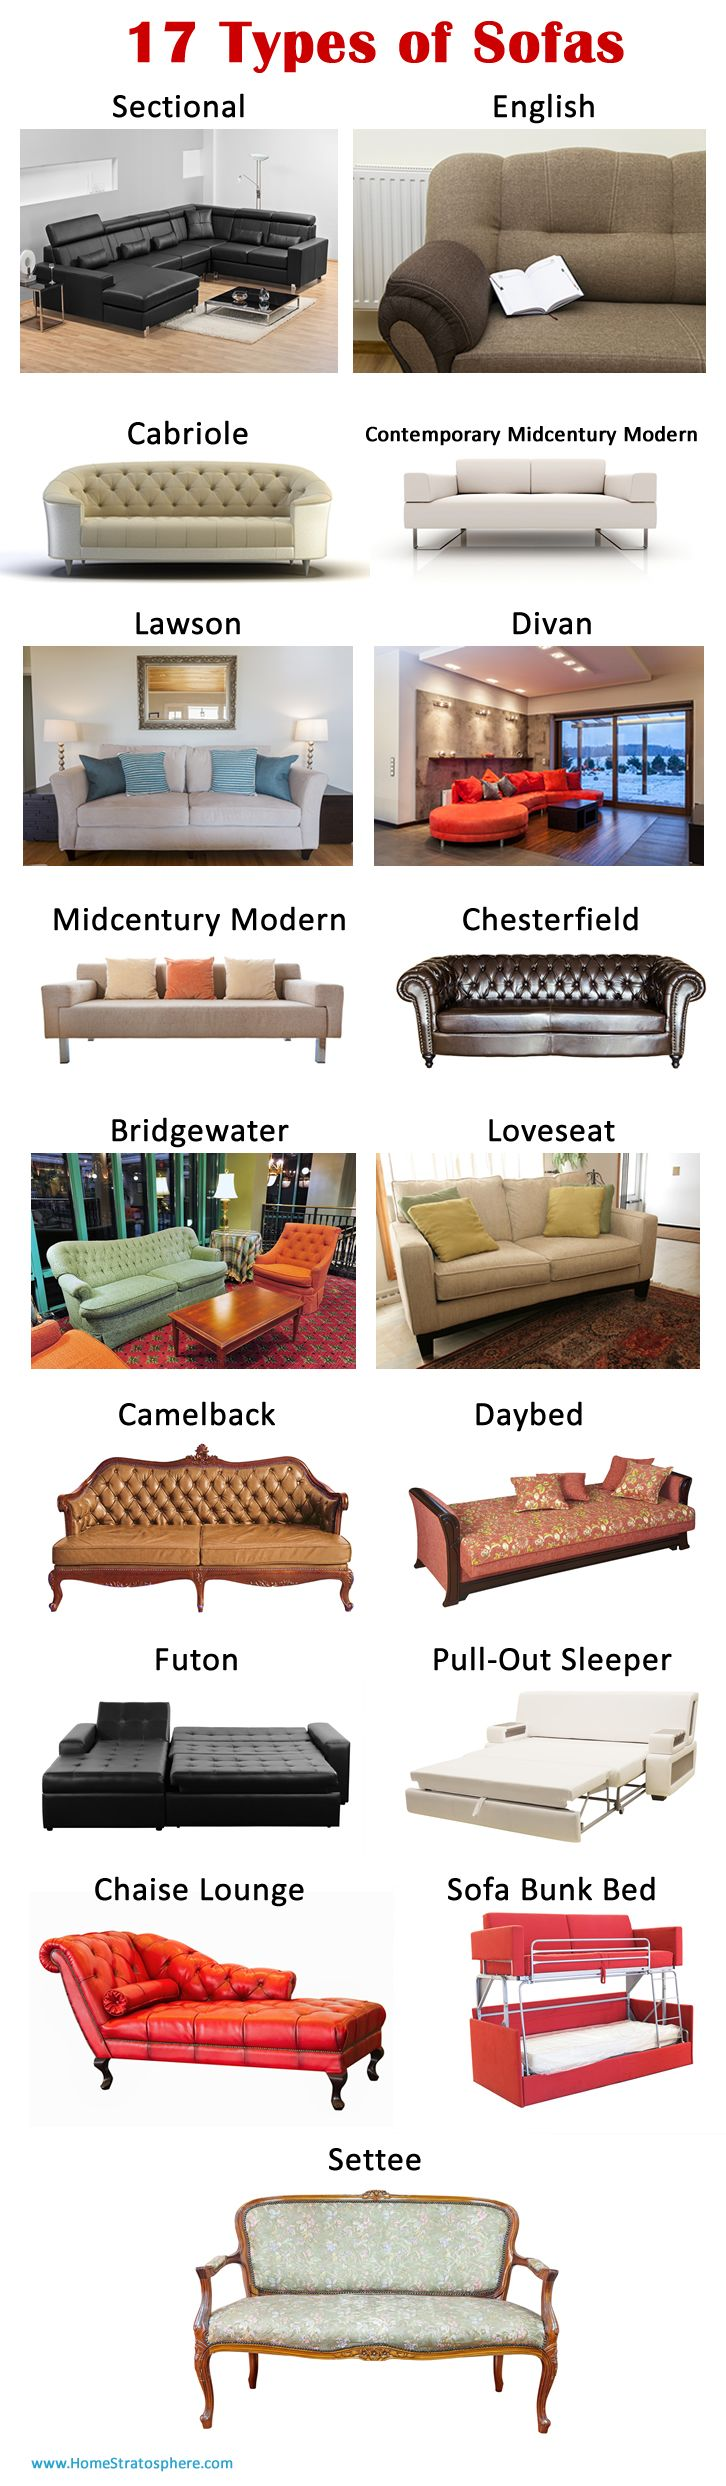 Sofa Set Design Names 20 Types Of Sofas Couches Explained With Pictures Interior